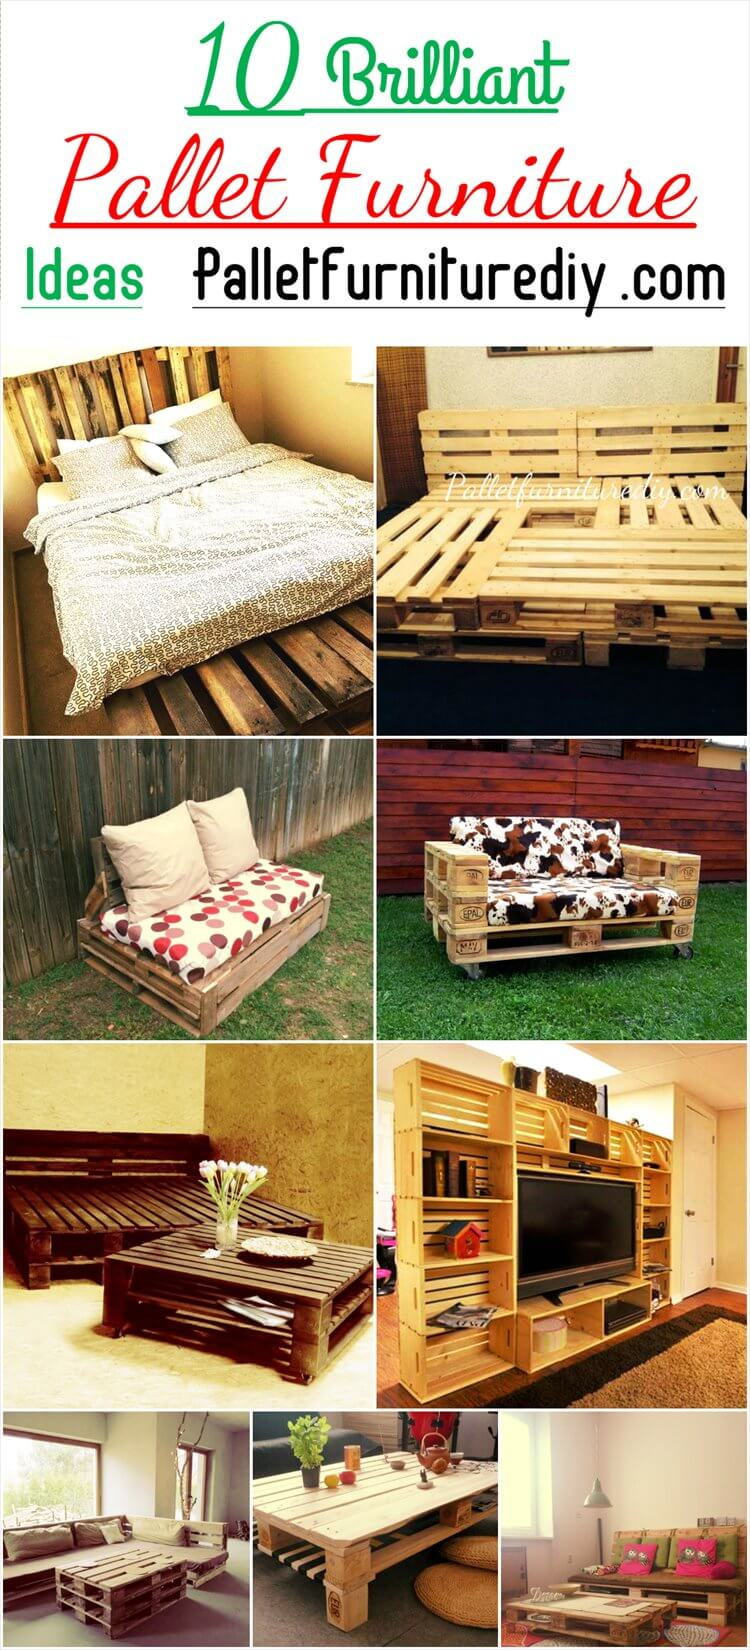 Pallet Furniture Ideas